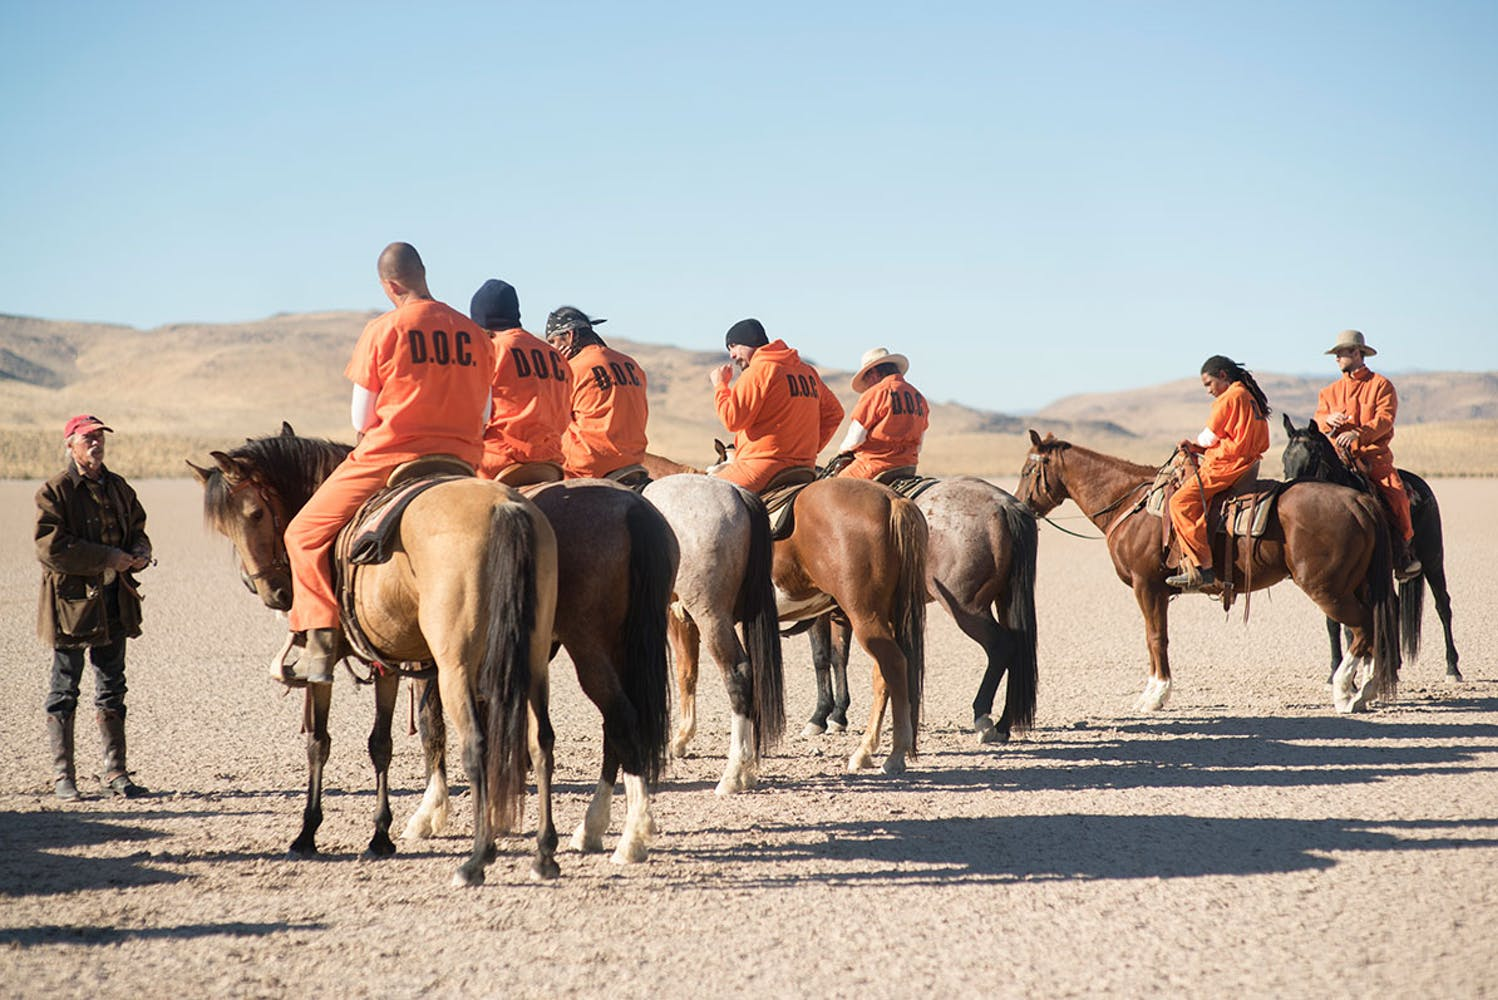 Man in a brown leather coat and red baseball cap talking to seven men in orange D.O.C. jumpsuits sitting horseback.